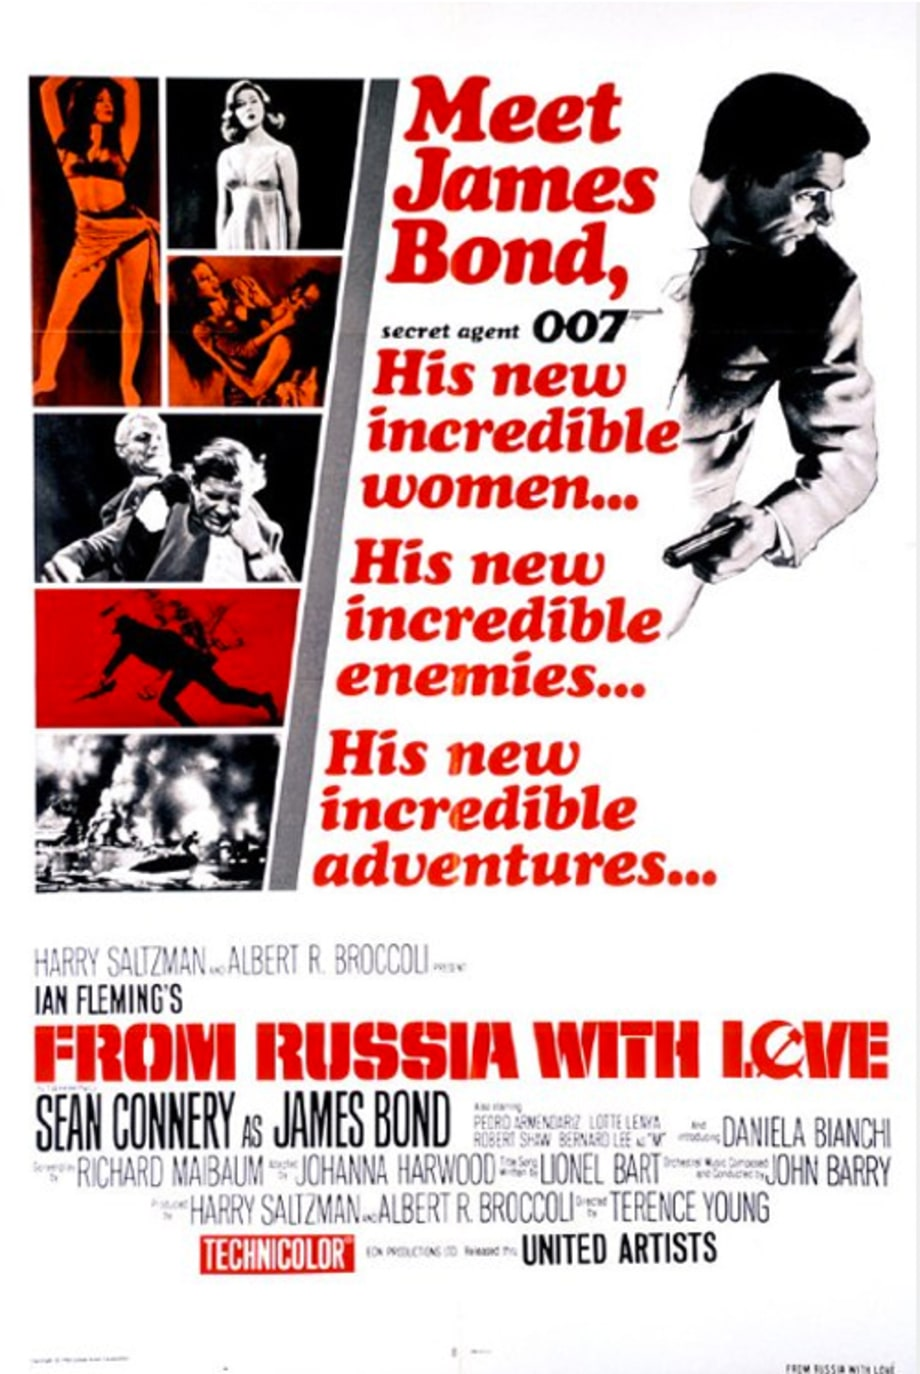 24. 'From Russia With Love'